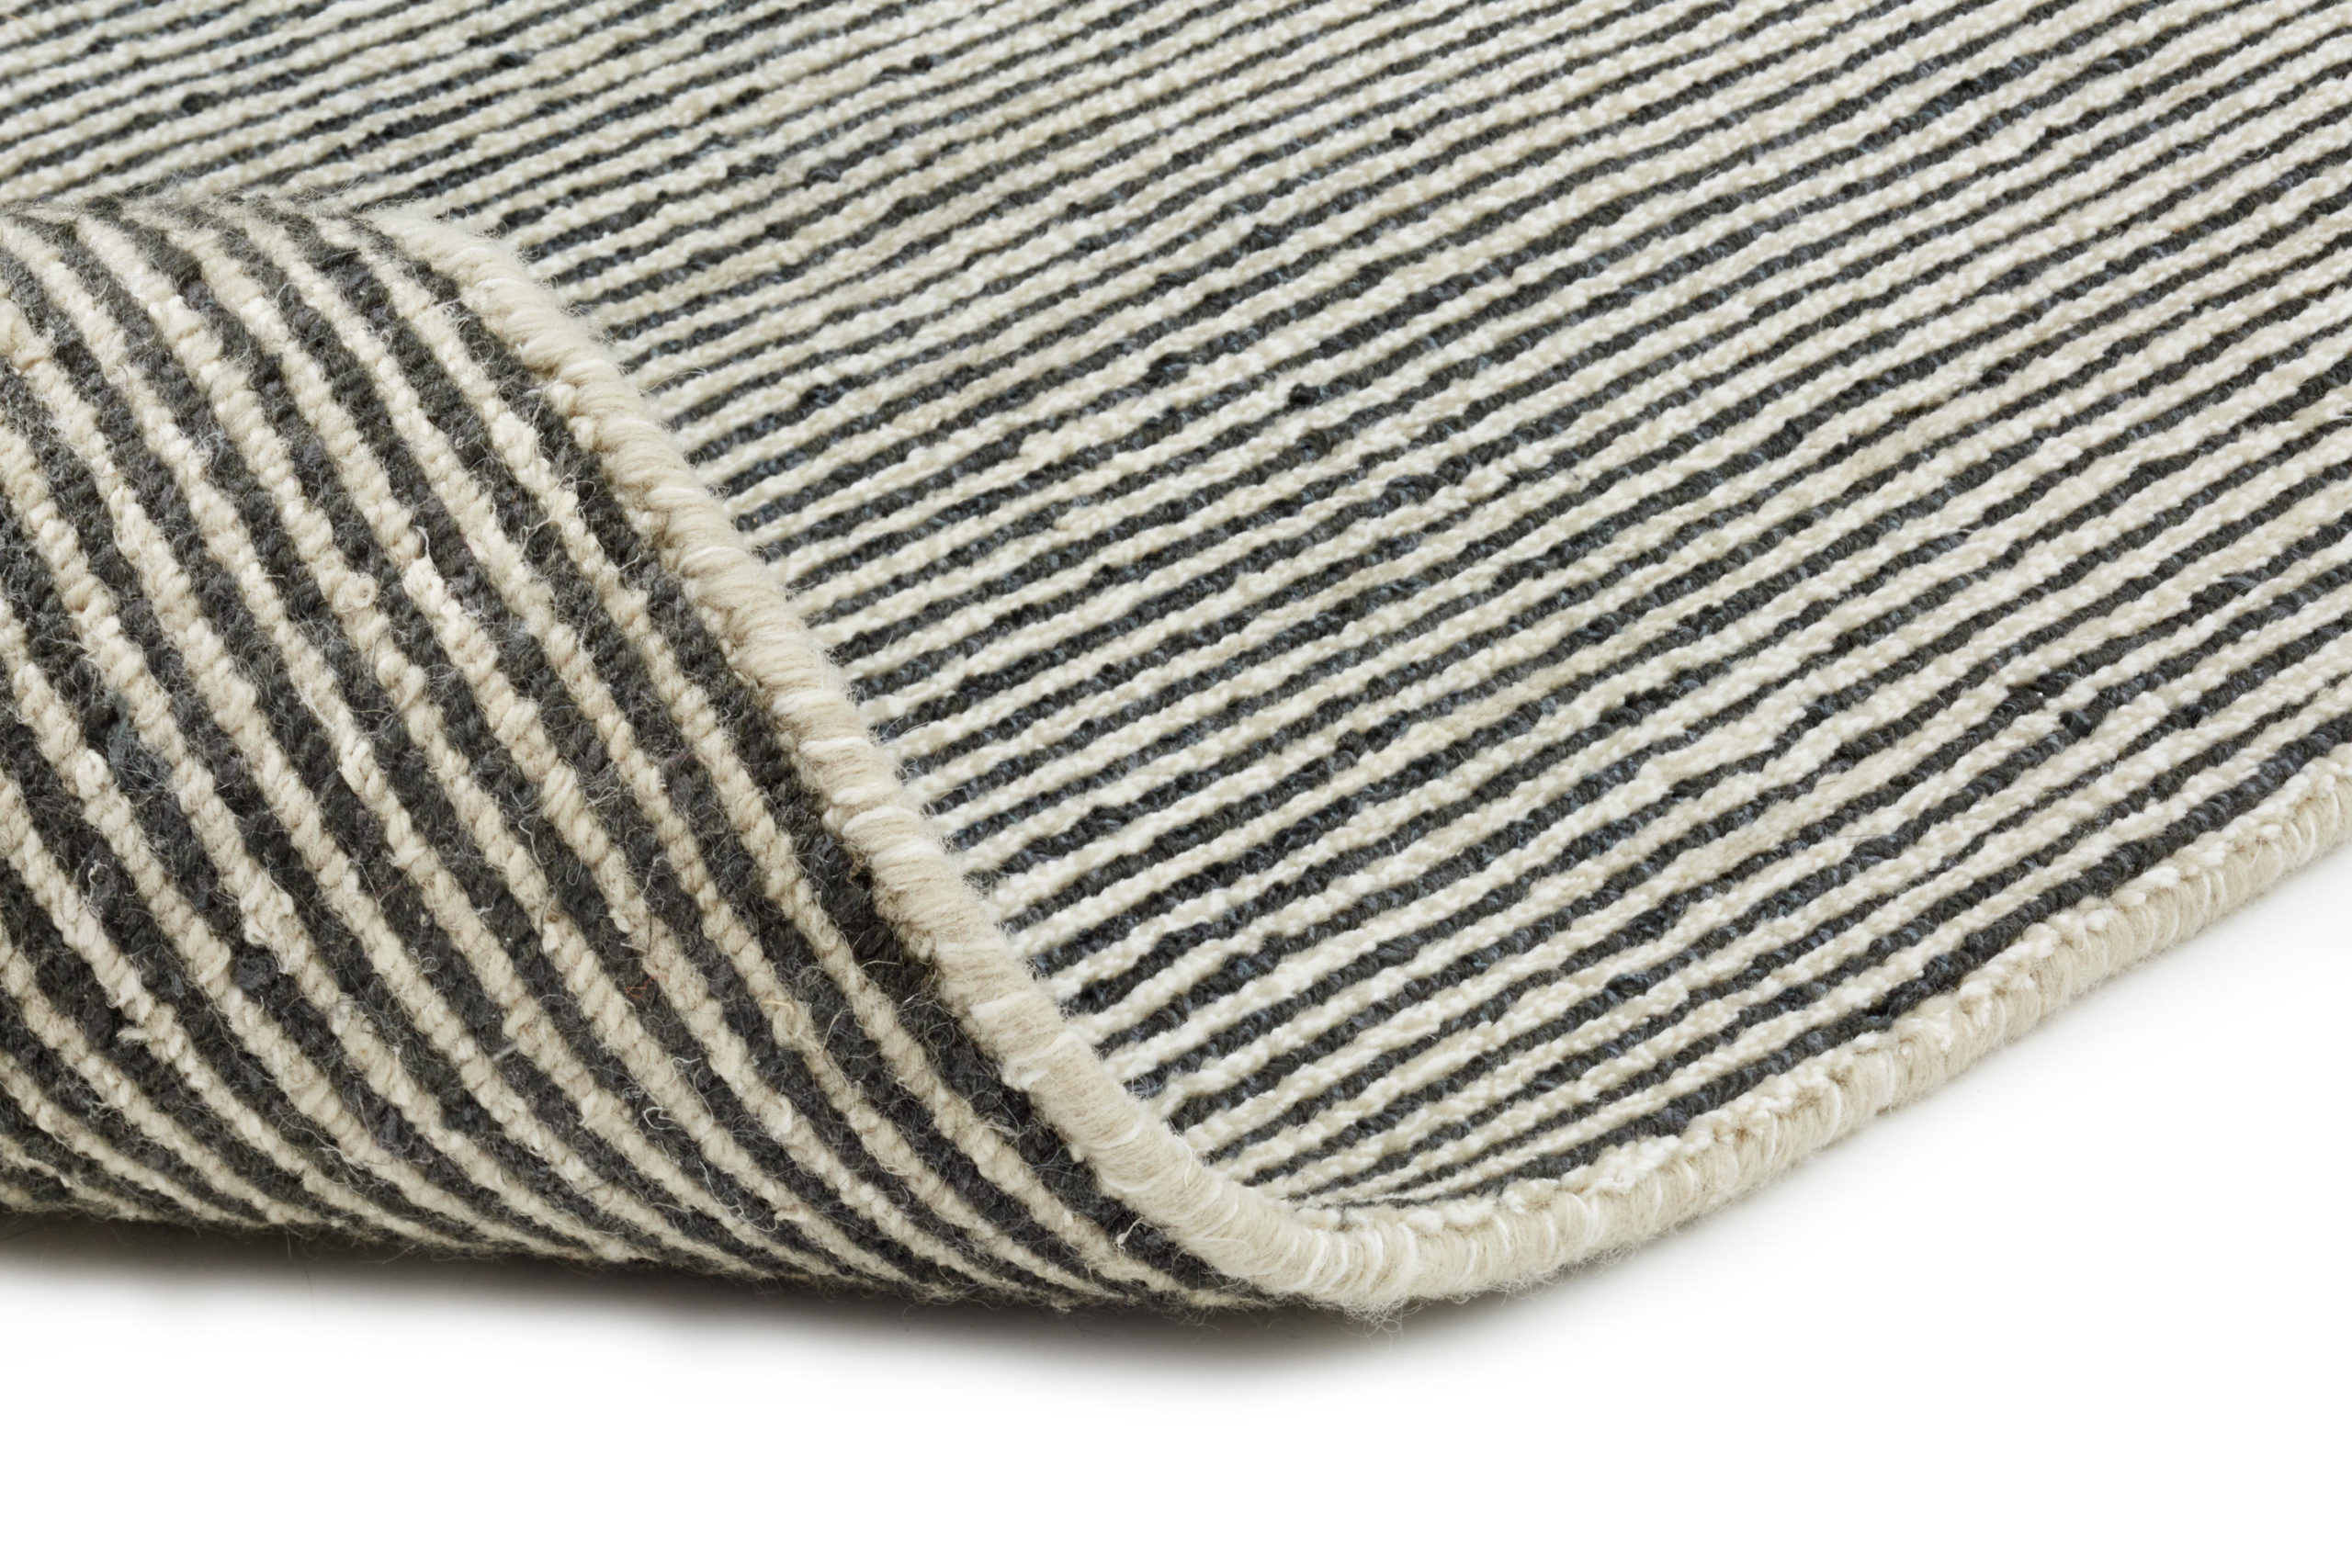 odin-rug-beige-charcoal-wool-linen-hand-knotted-1214-s-detail-b